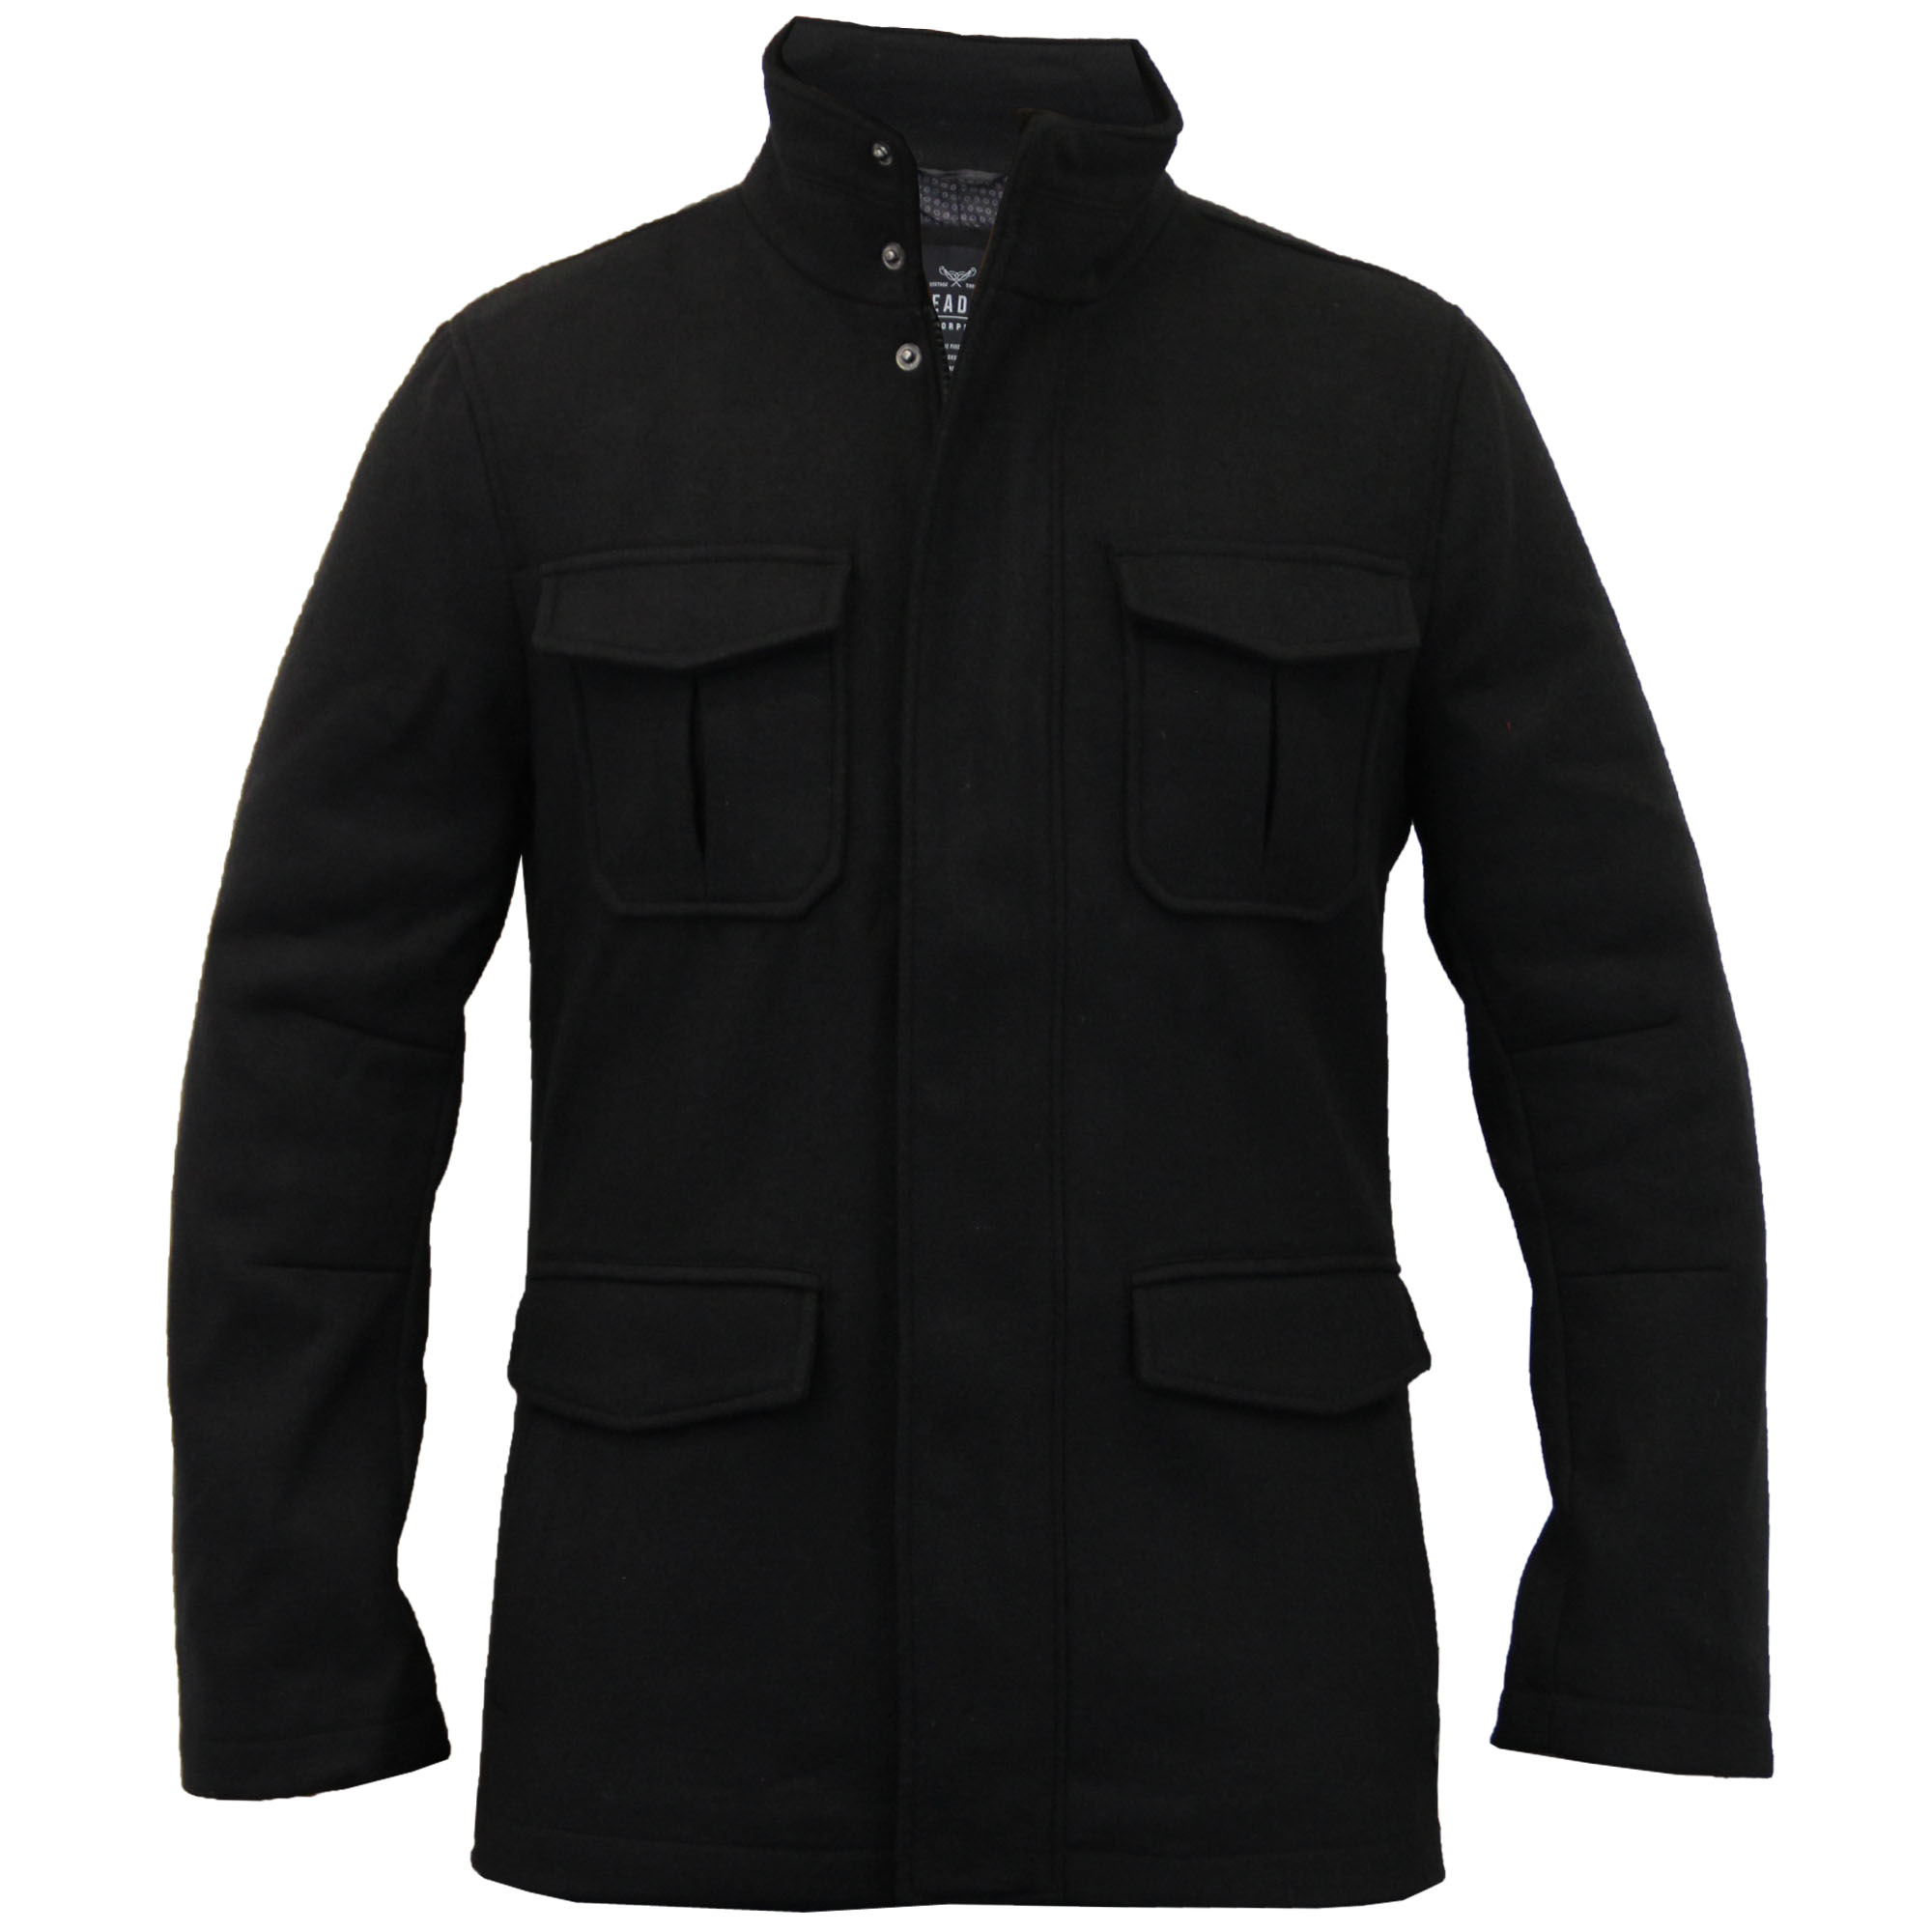 BGSD Men's Jackets & Outerwear. Showing 40 of 66 results that match your query. Search Product Result. Product - Men's